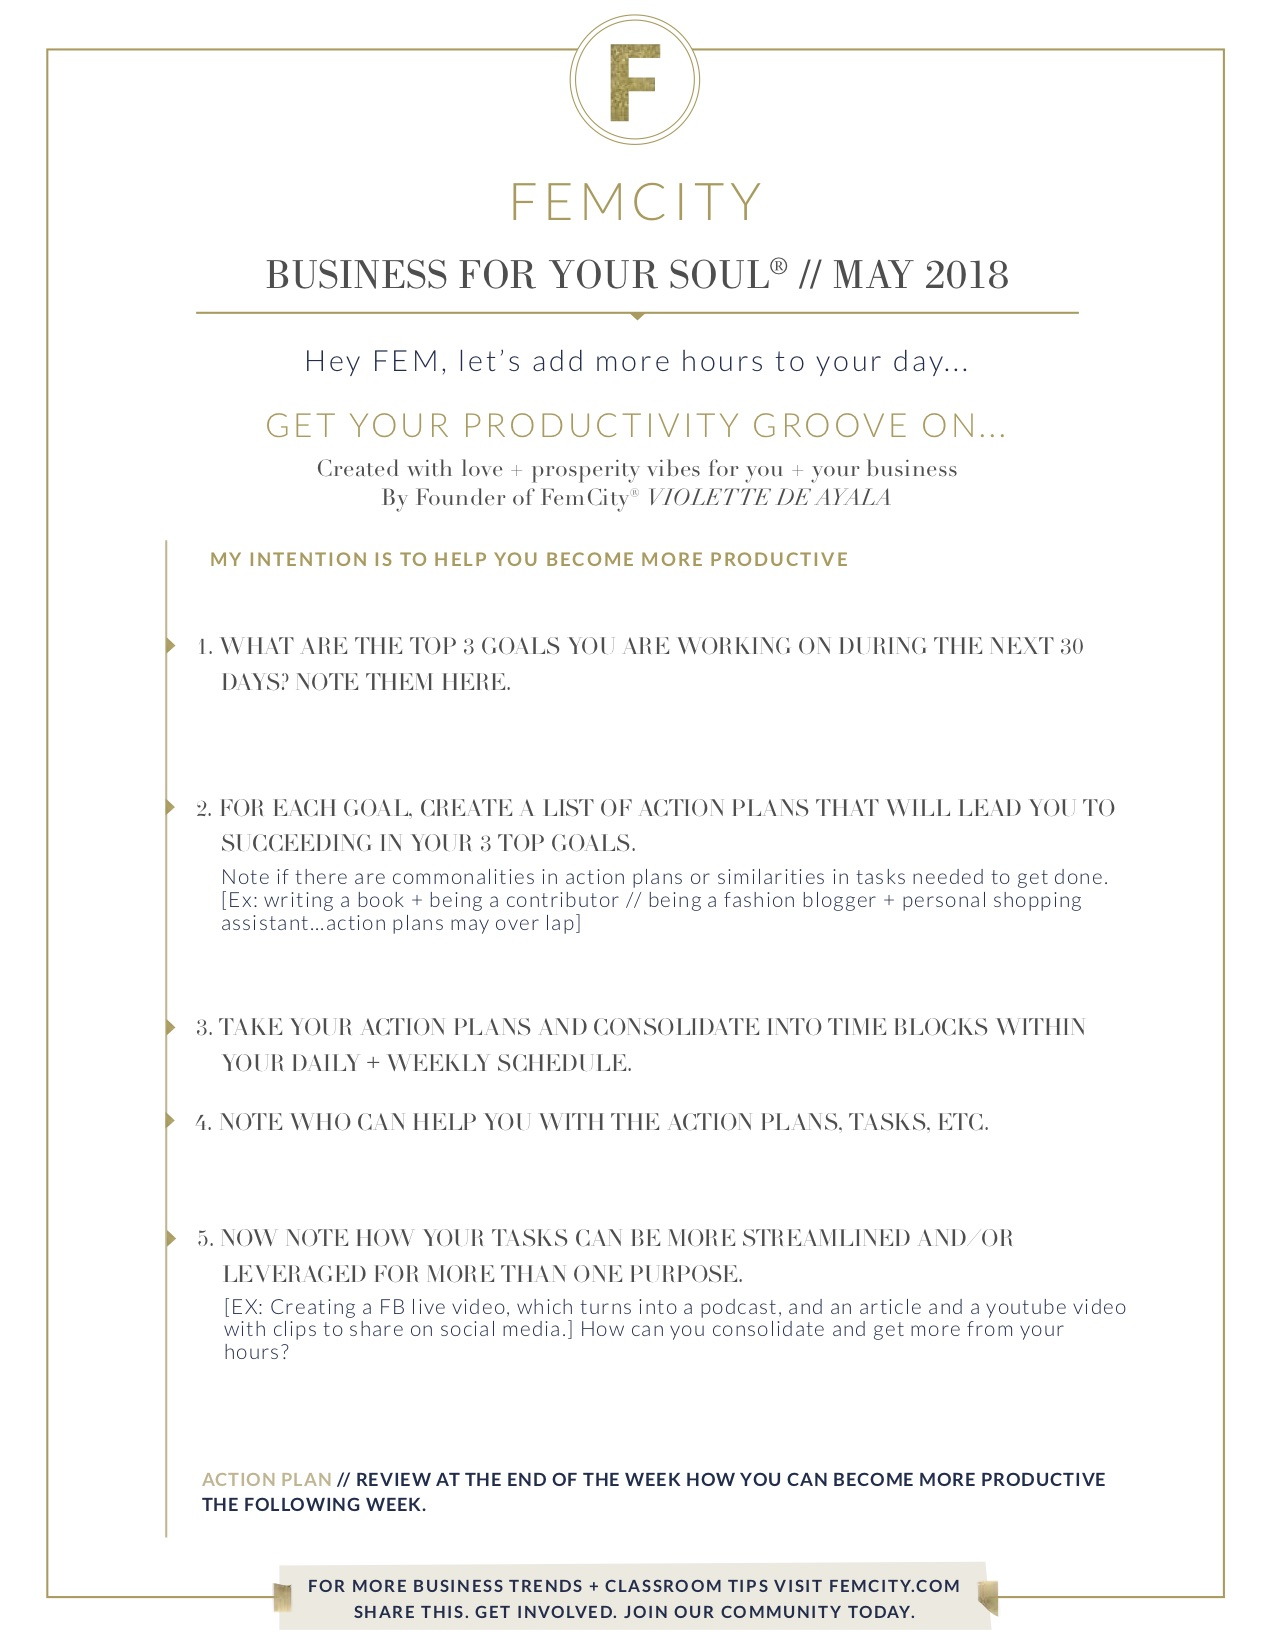 GET+YOUR+PRODUCTIVITY+GROOVE+ON+MAY+WORKSHEET.jpg